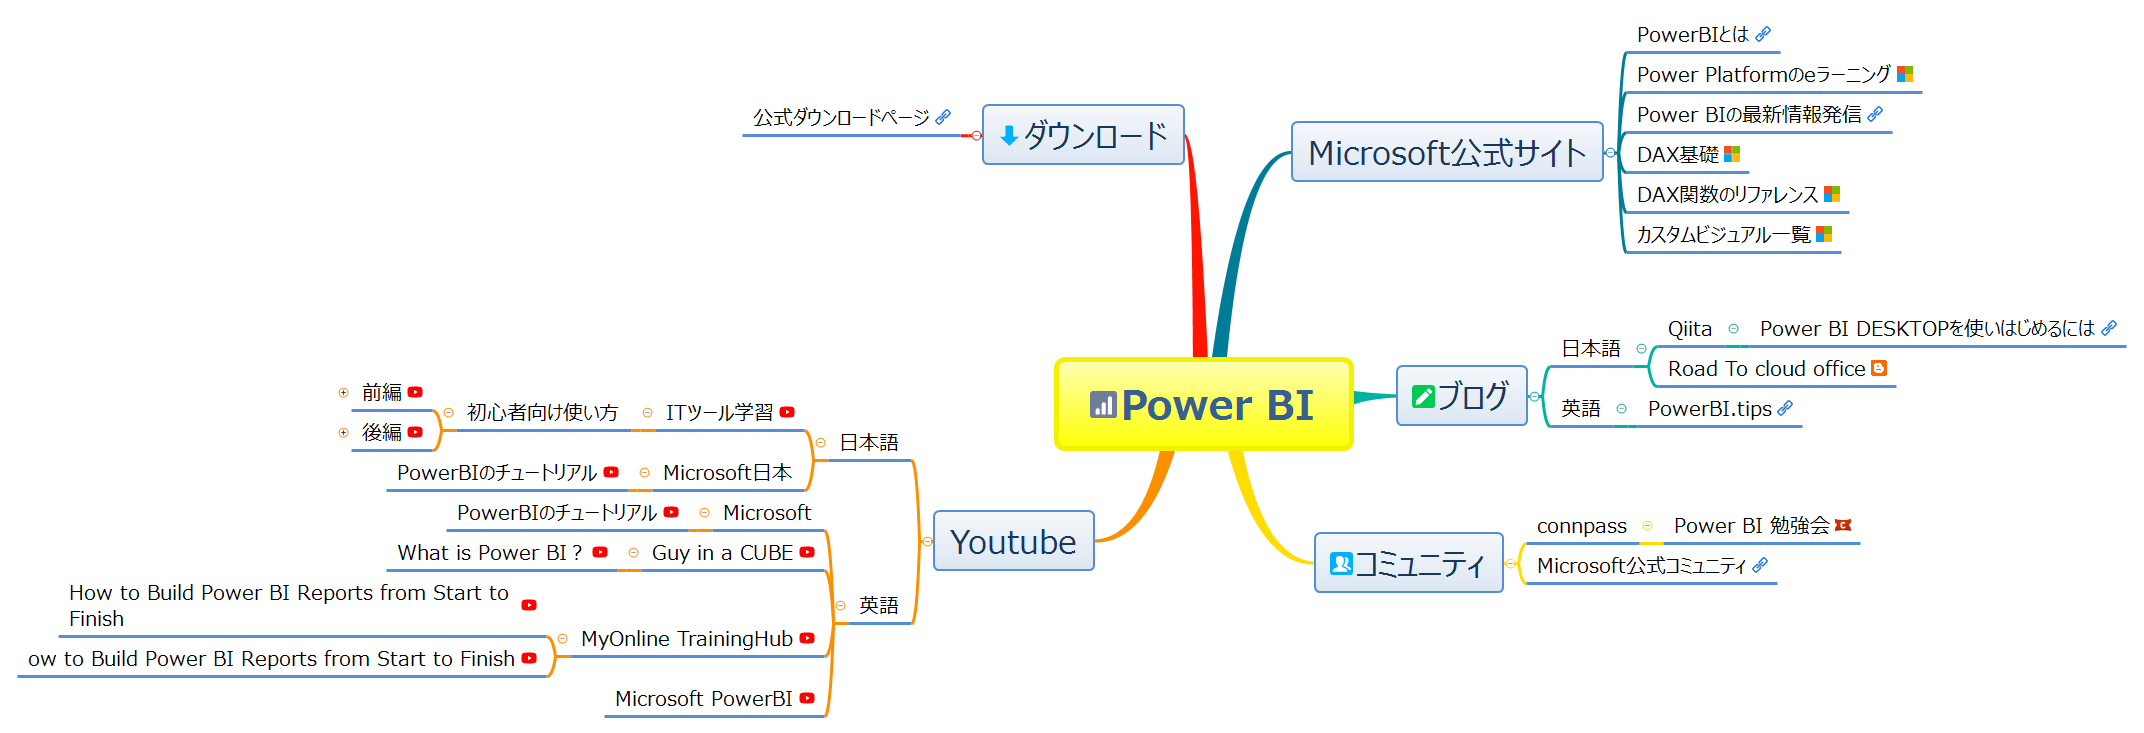 Xmind公式サイト Xmind Mind Mapping Software